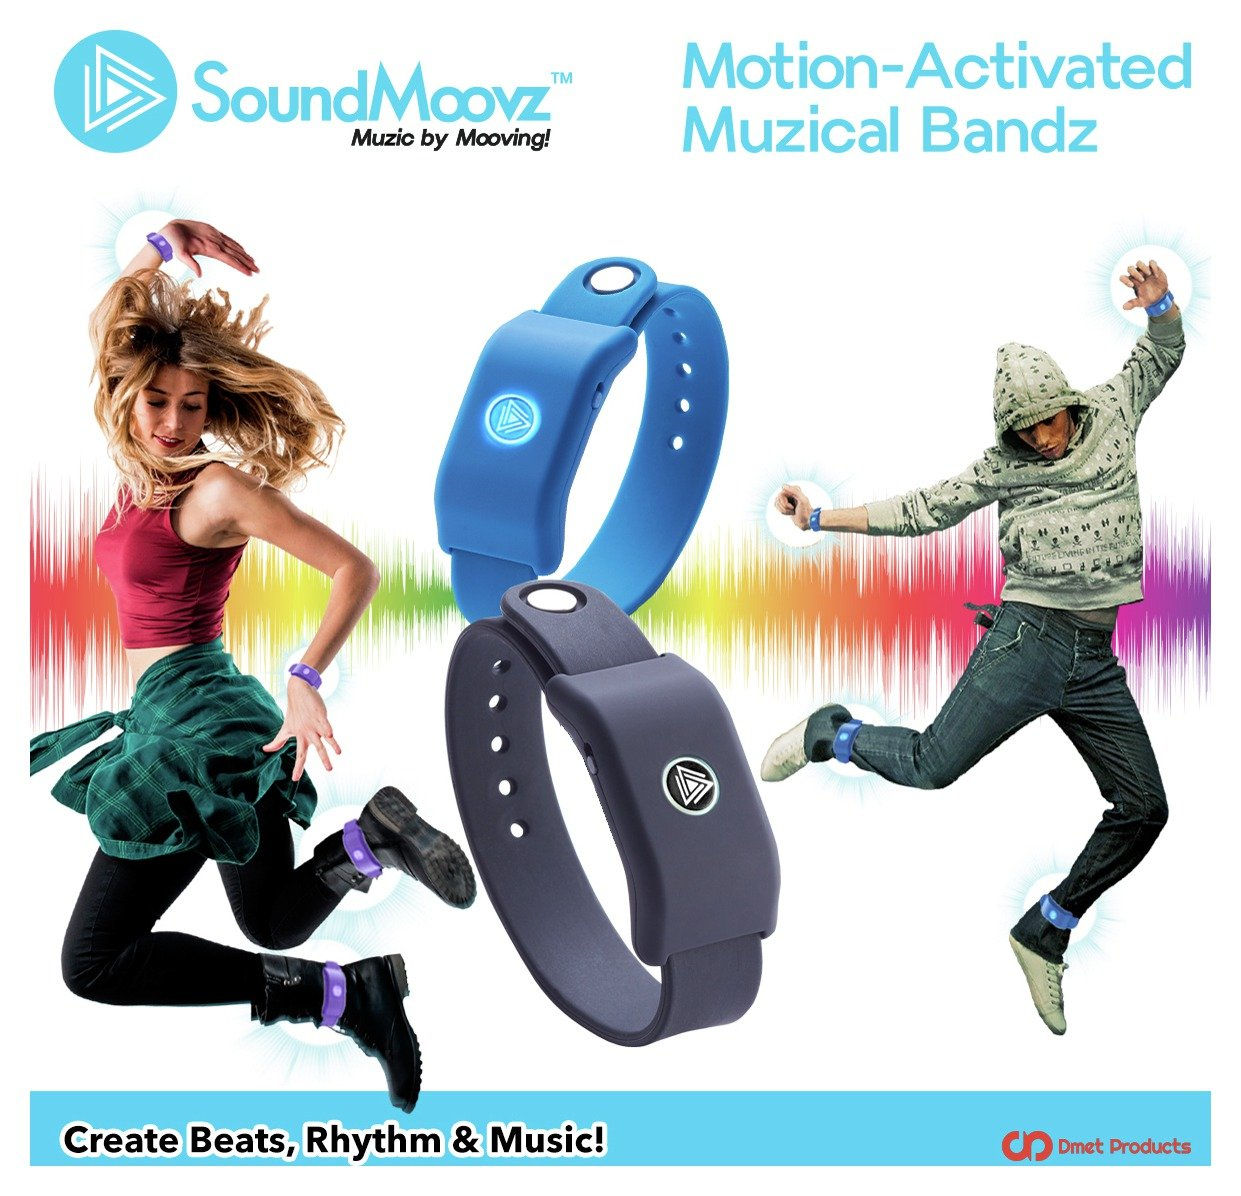 Image of Beat Moovz SoundMoovz Motion-Activated Musical Bandz & App